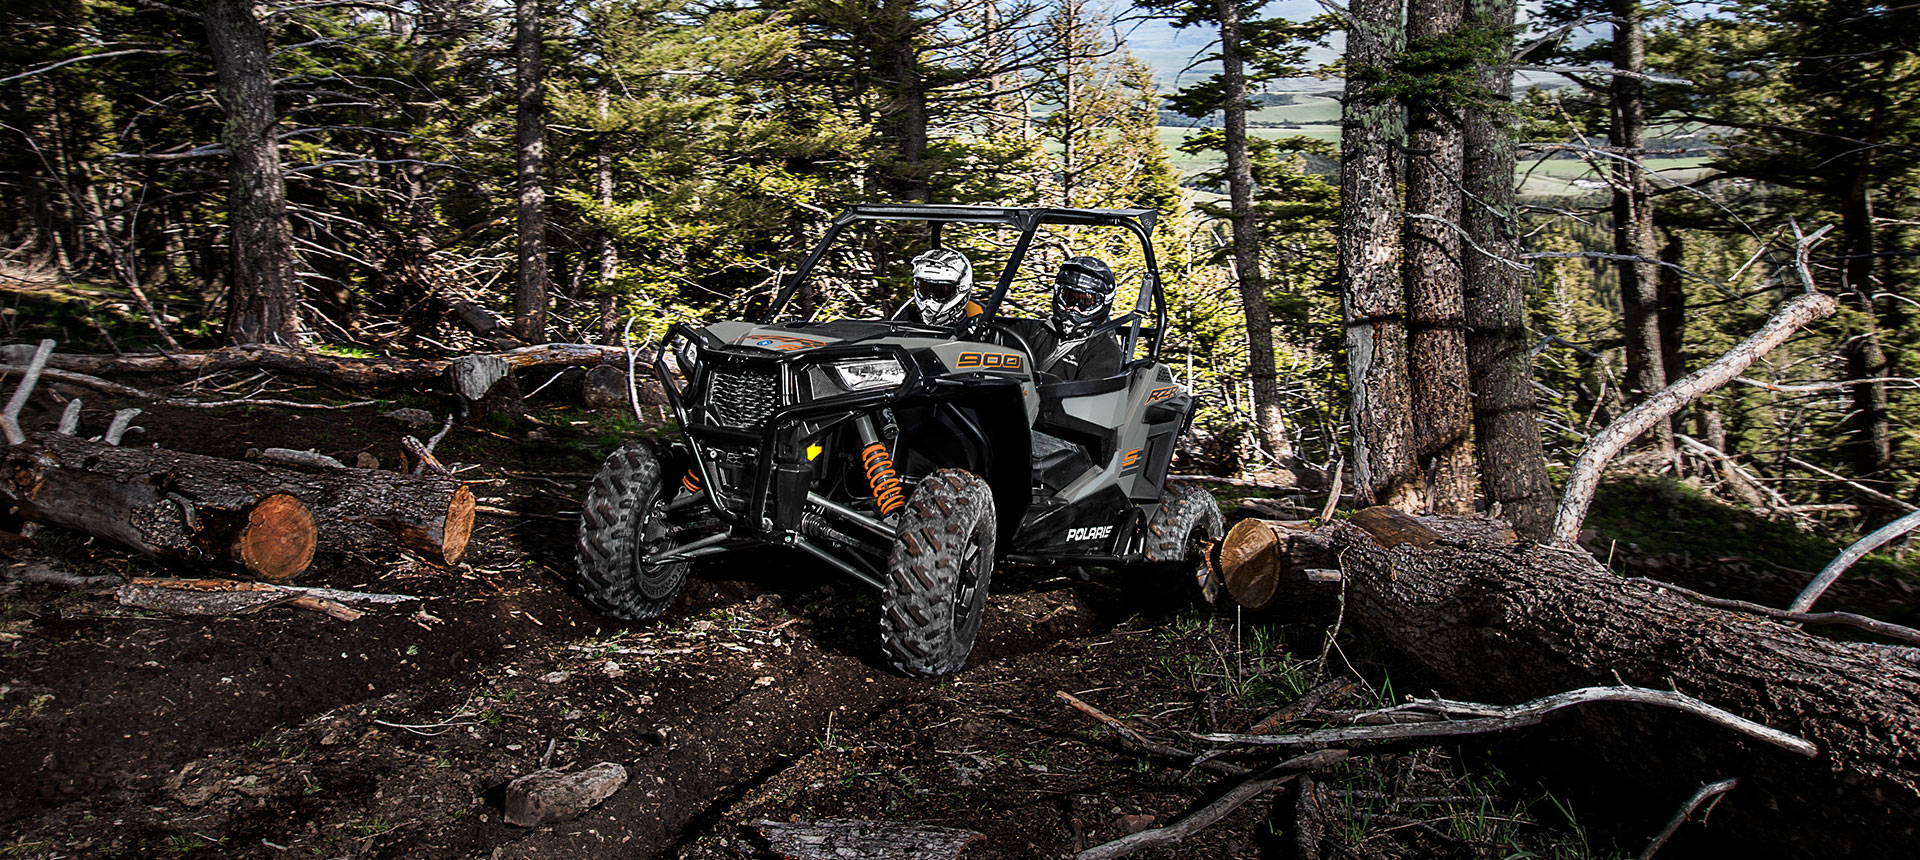 2019 Polaris RZR S 900 EPS in Sturgeon Bay, Wisconsin - Photo 3